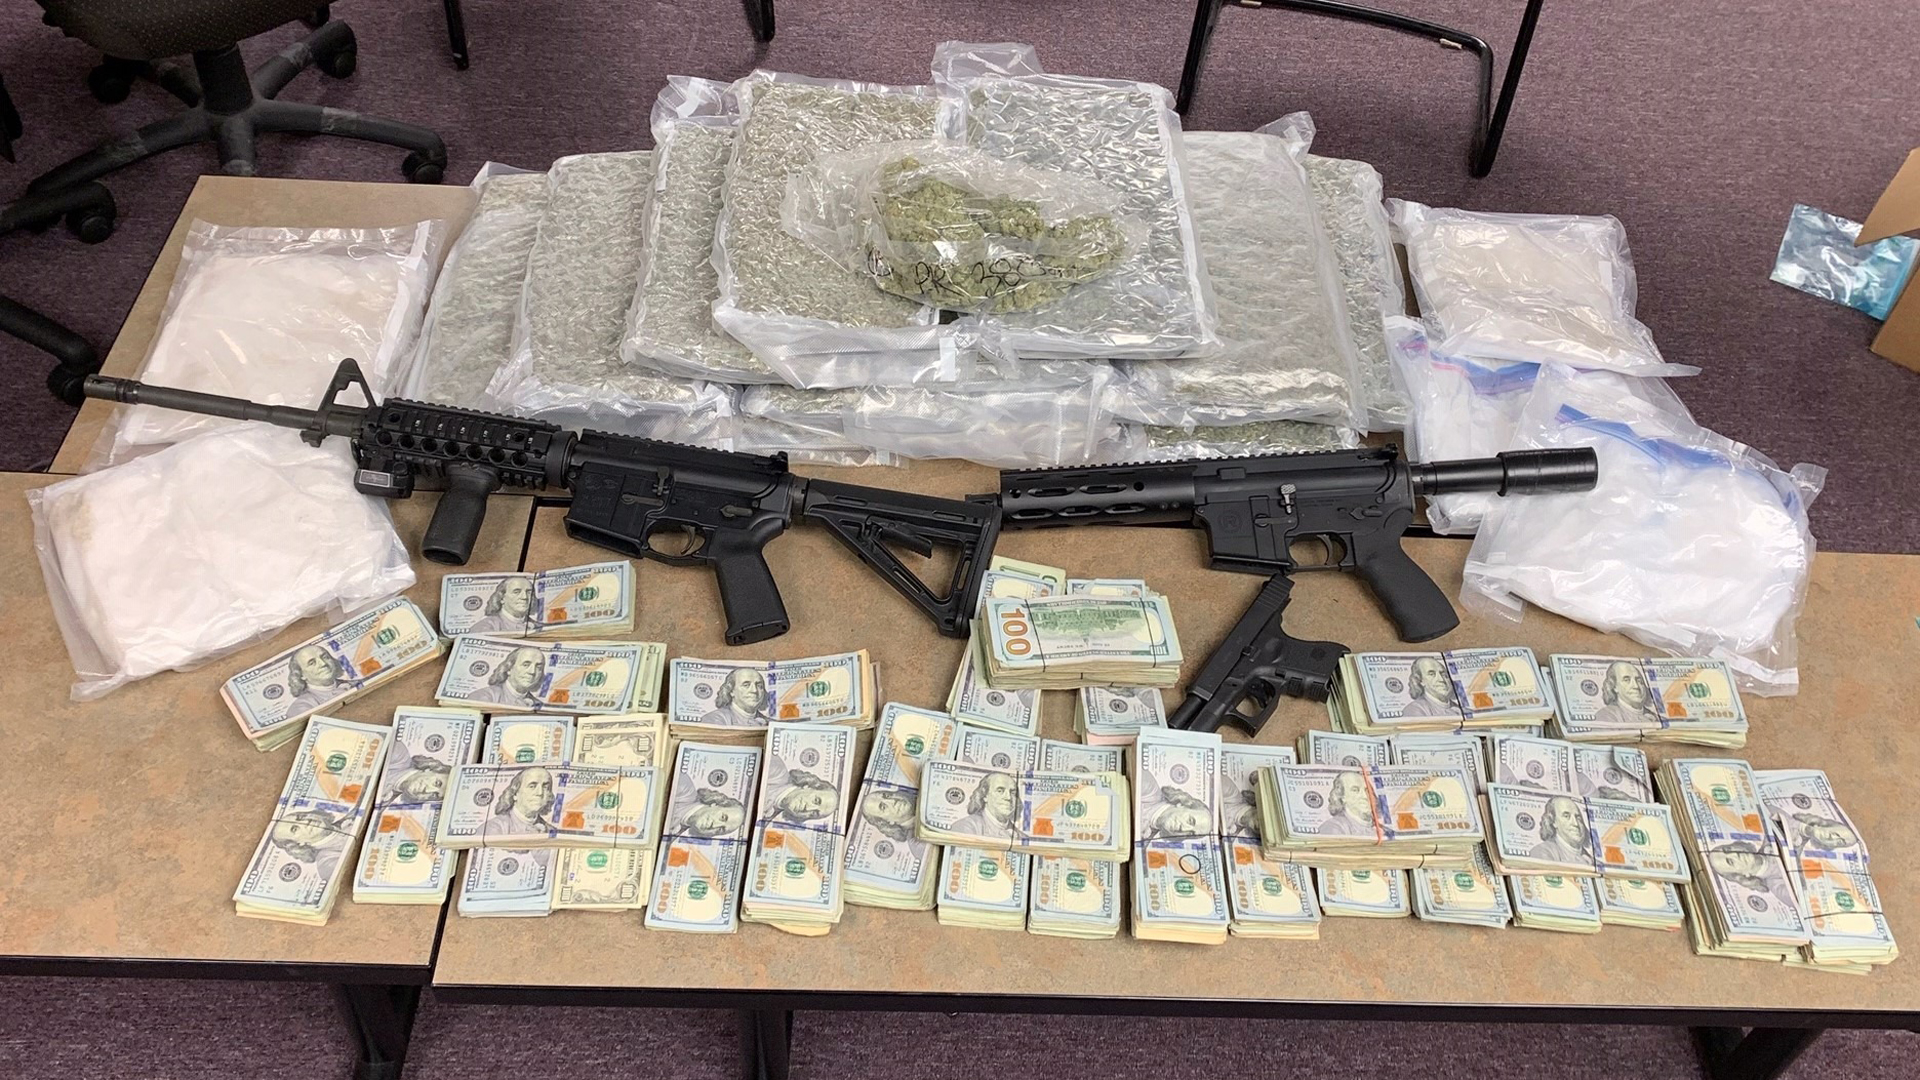 The Georgia Bureau of Investigation released this photo of drugs, firearms and cash seized in the raid.